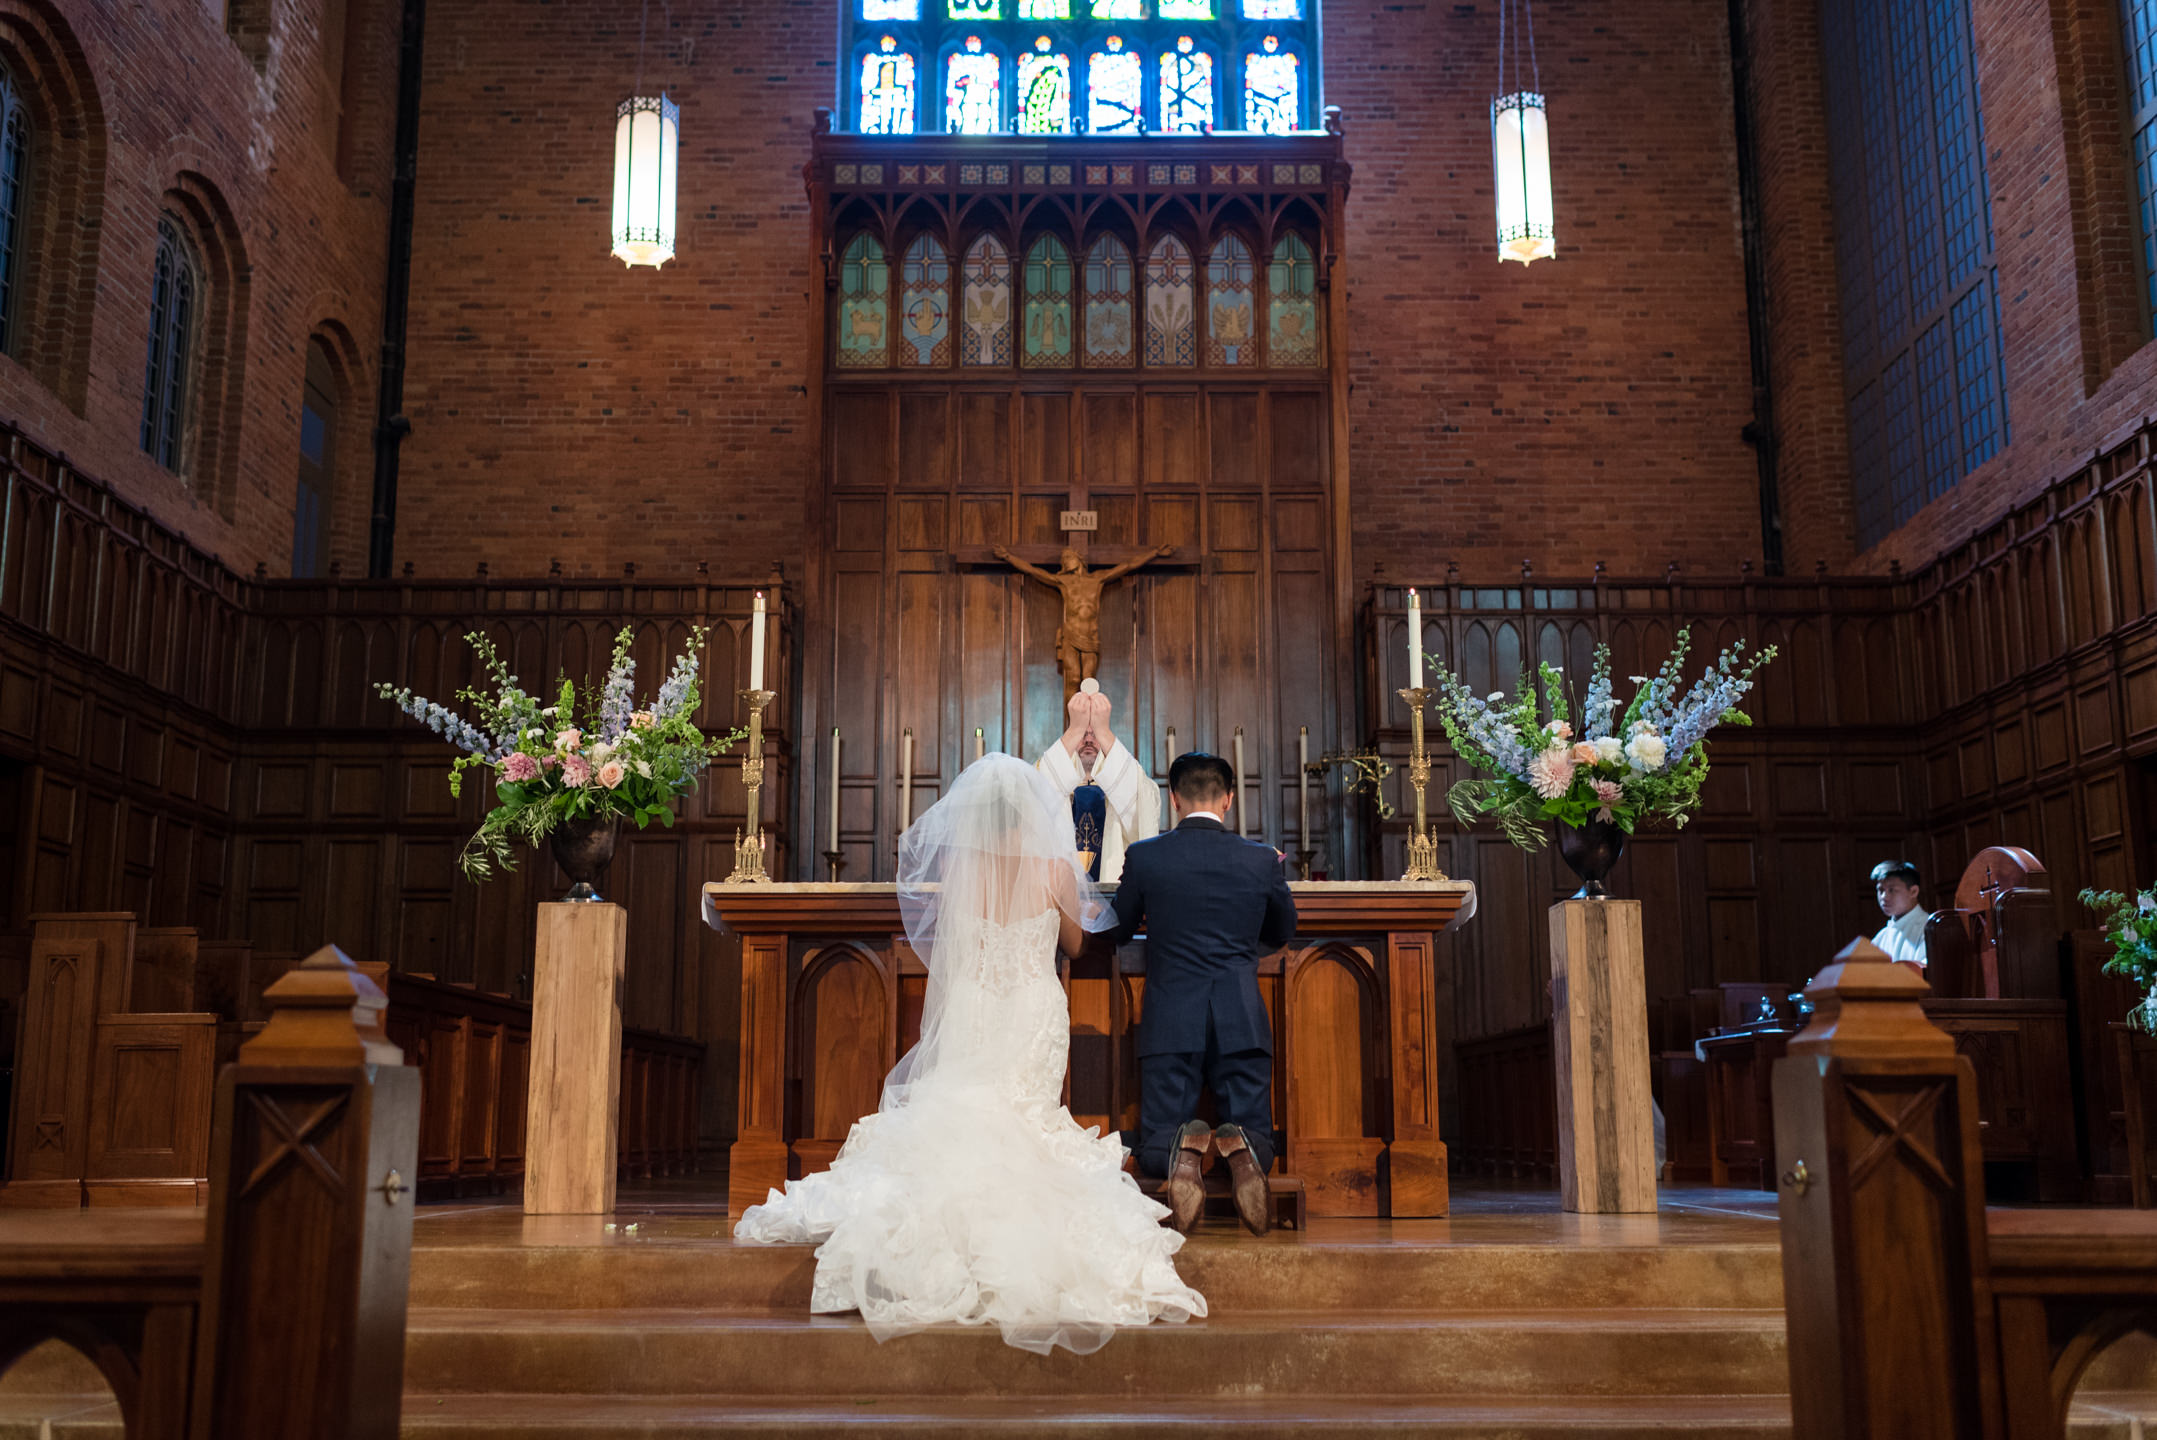 Asian Bride and Groom Pray during Wedding Ceremony